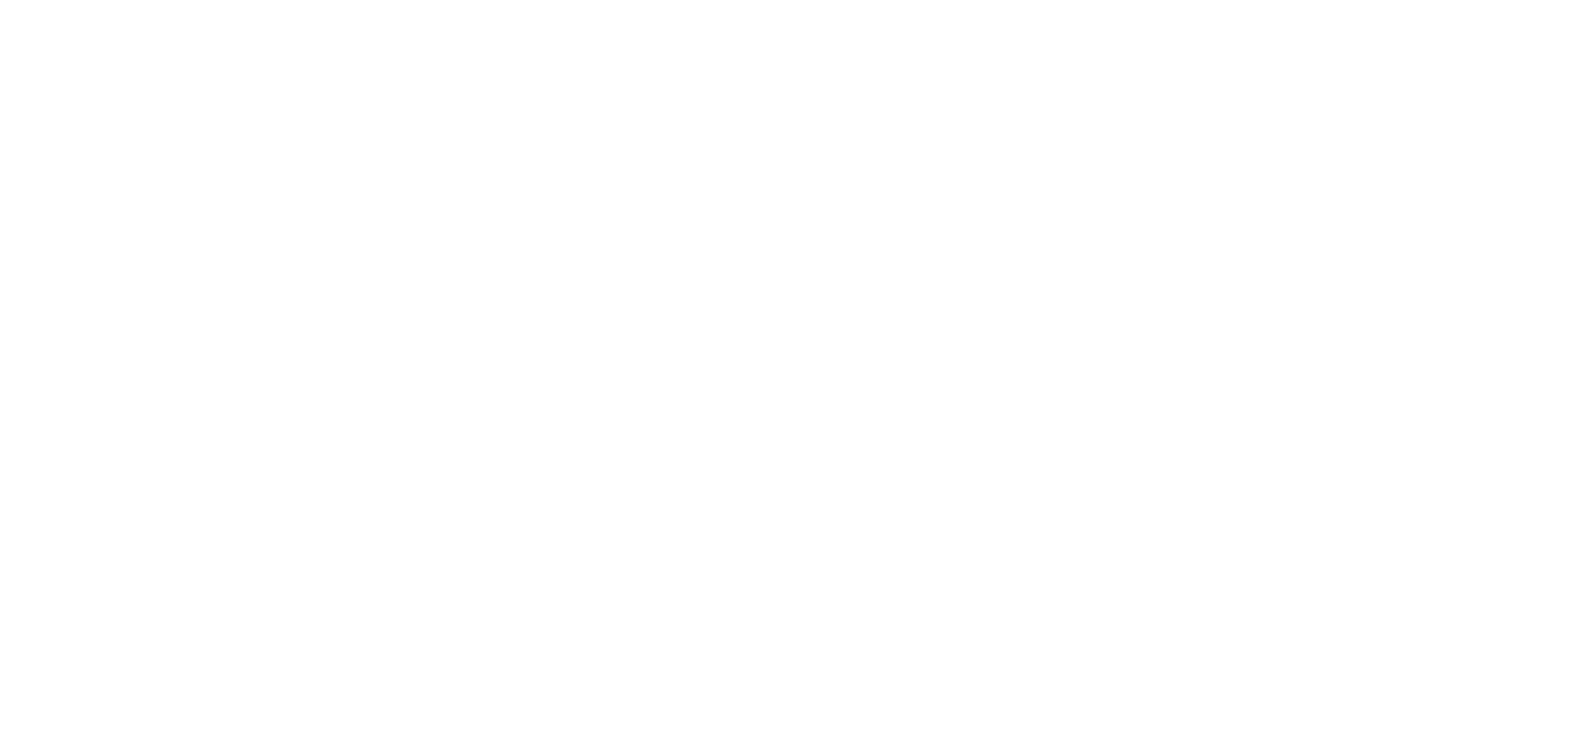 Sparre Vreede Partners logotyp